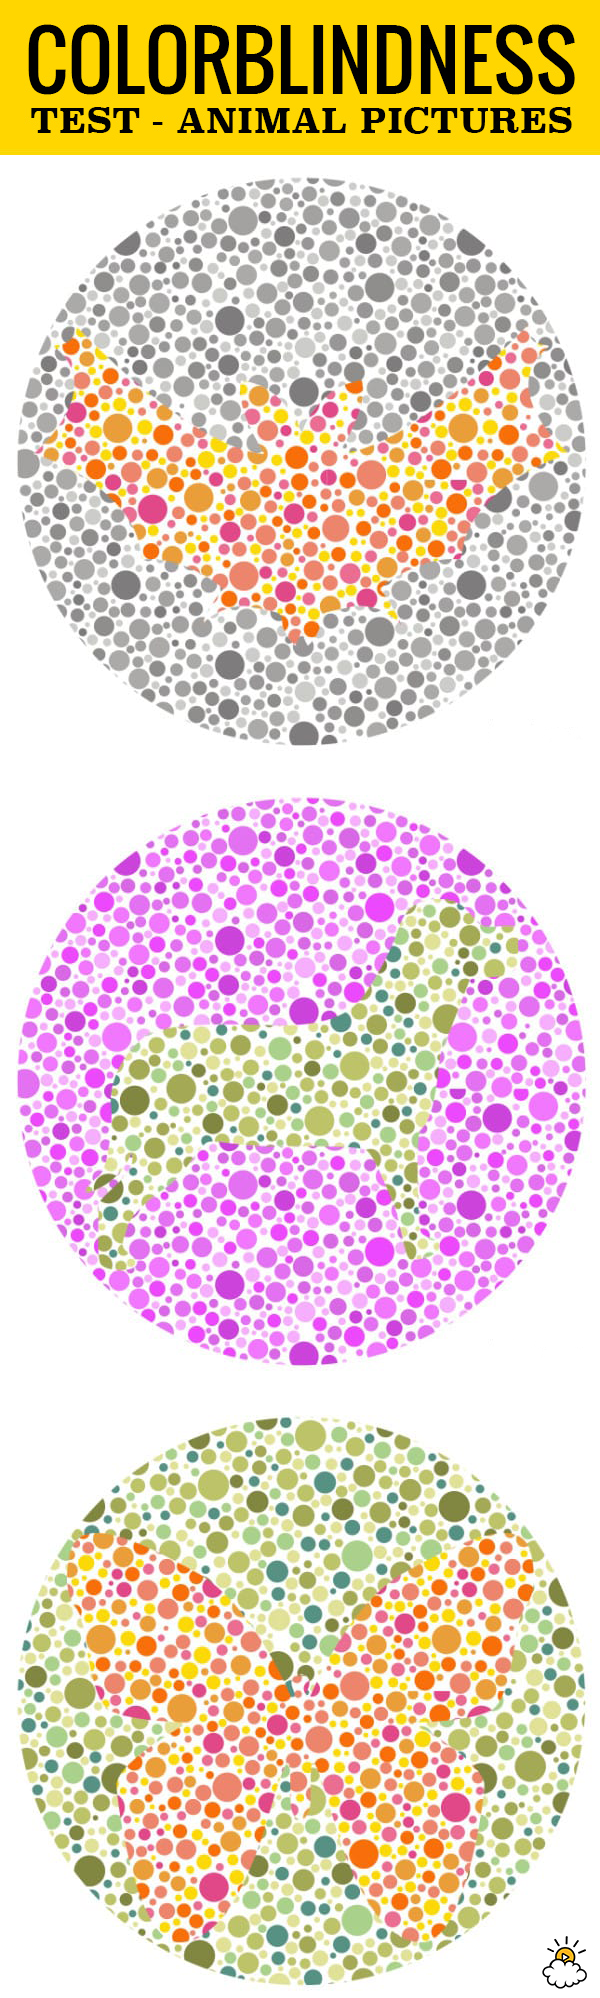 How Color Blind Are You? This Test Reveals The Truth! | Health and ...